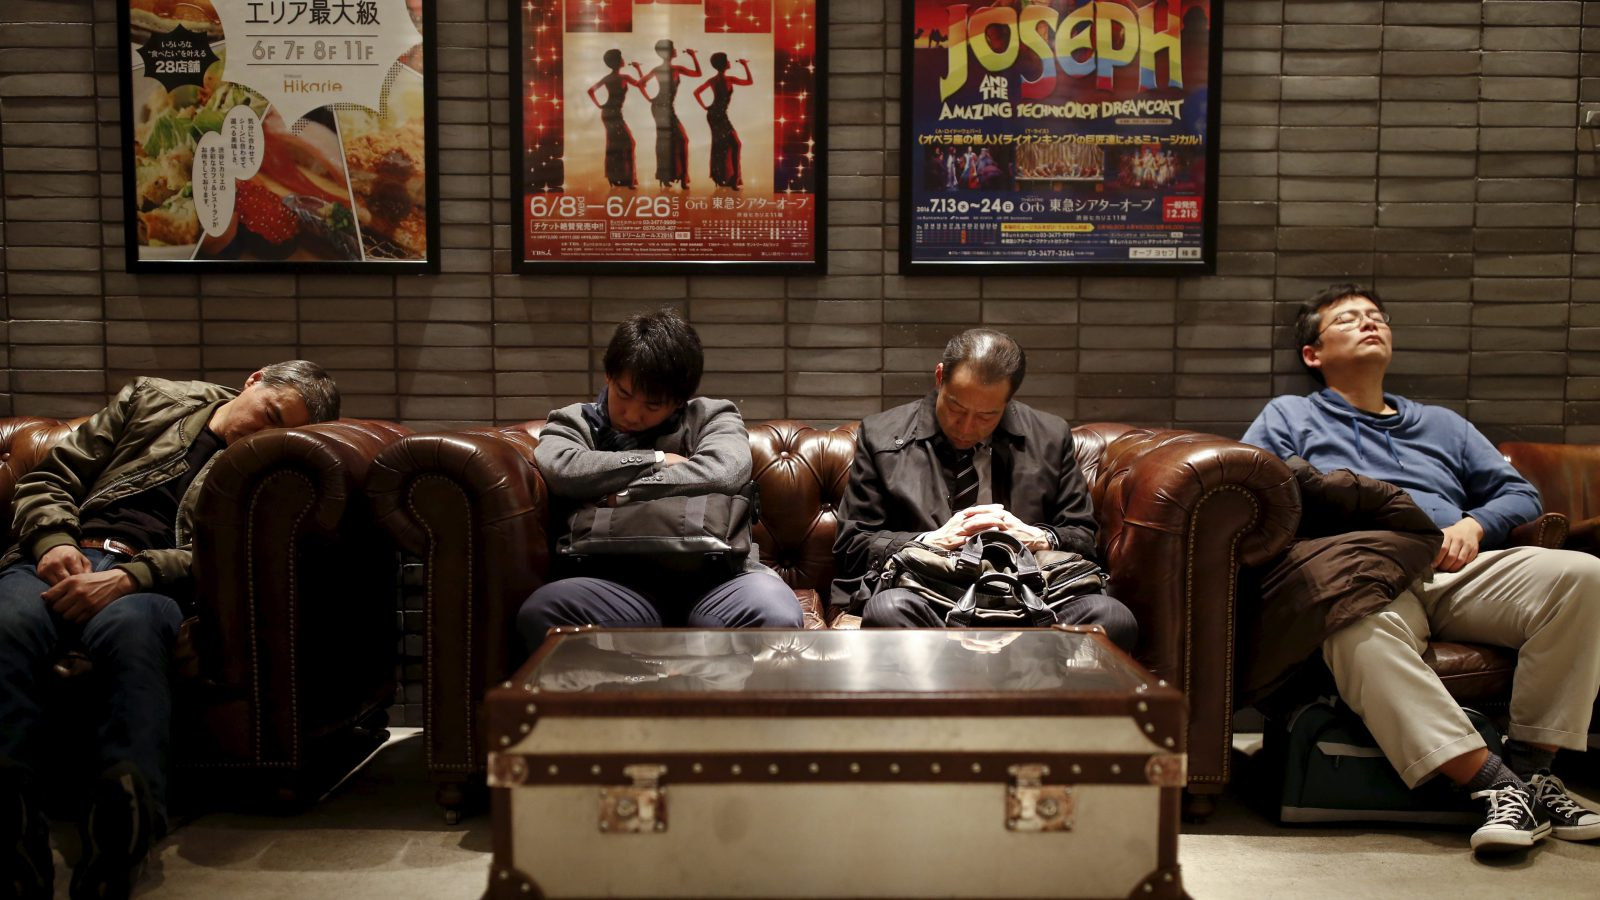 Men sleep in couches in a public seating area in a department store in Tokyo, Japan, March 17, 2016. REUTERS/Thomas Peter - RTSATRA